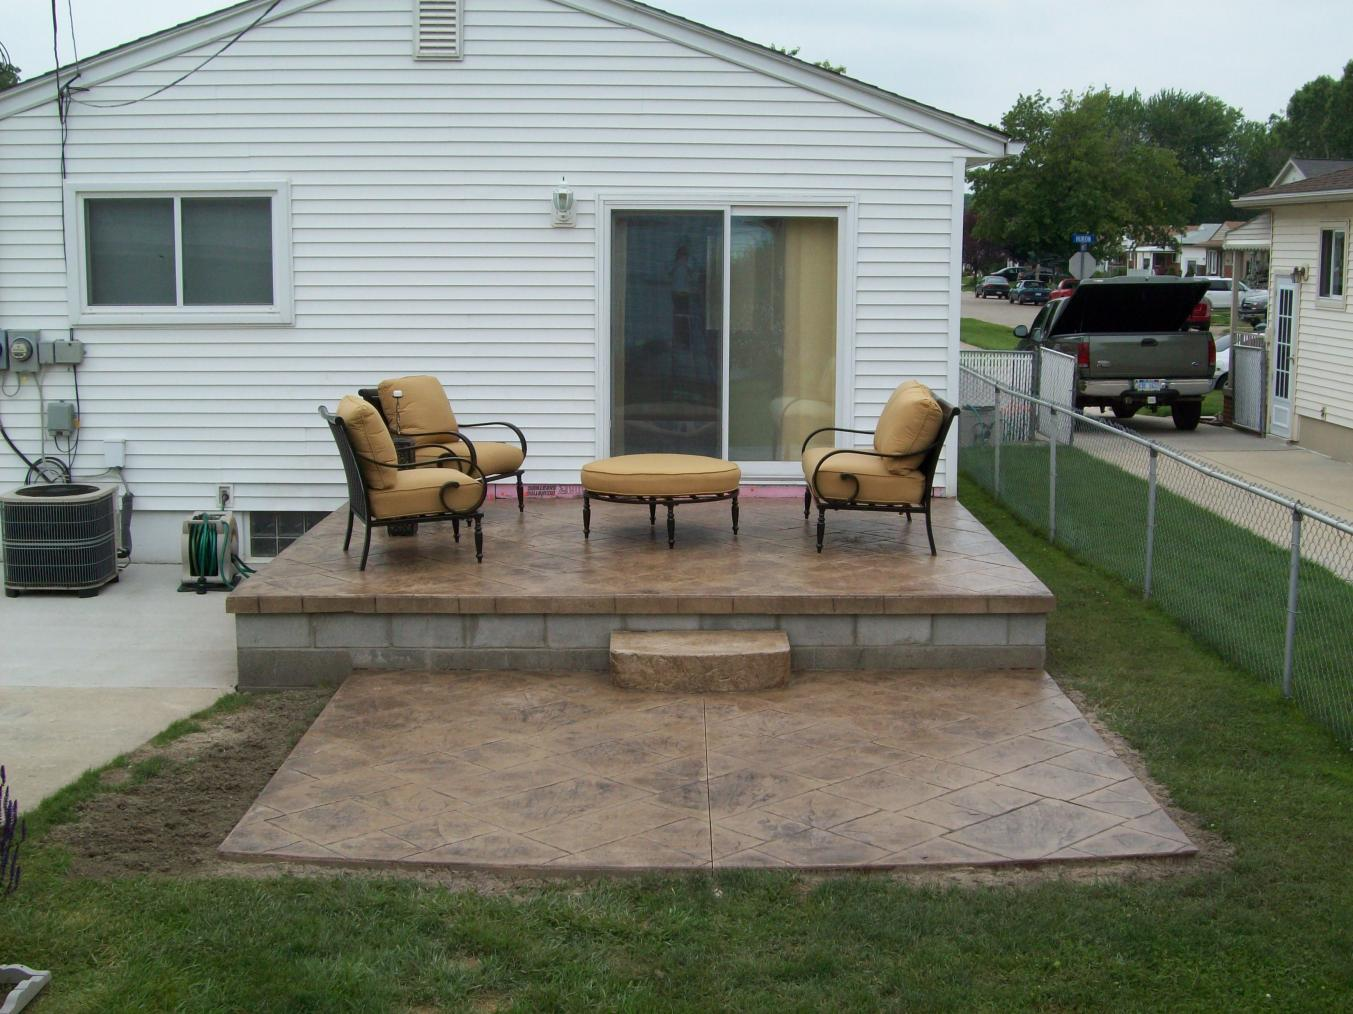 Building Detached Pergola on concrete, need advice!-new-picture.jpg